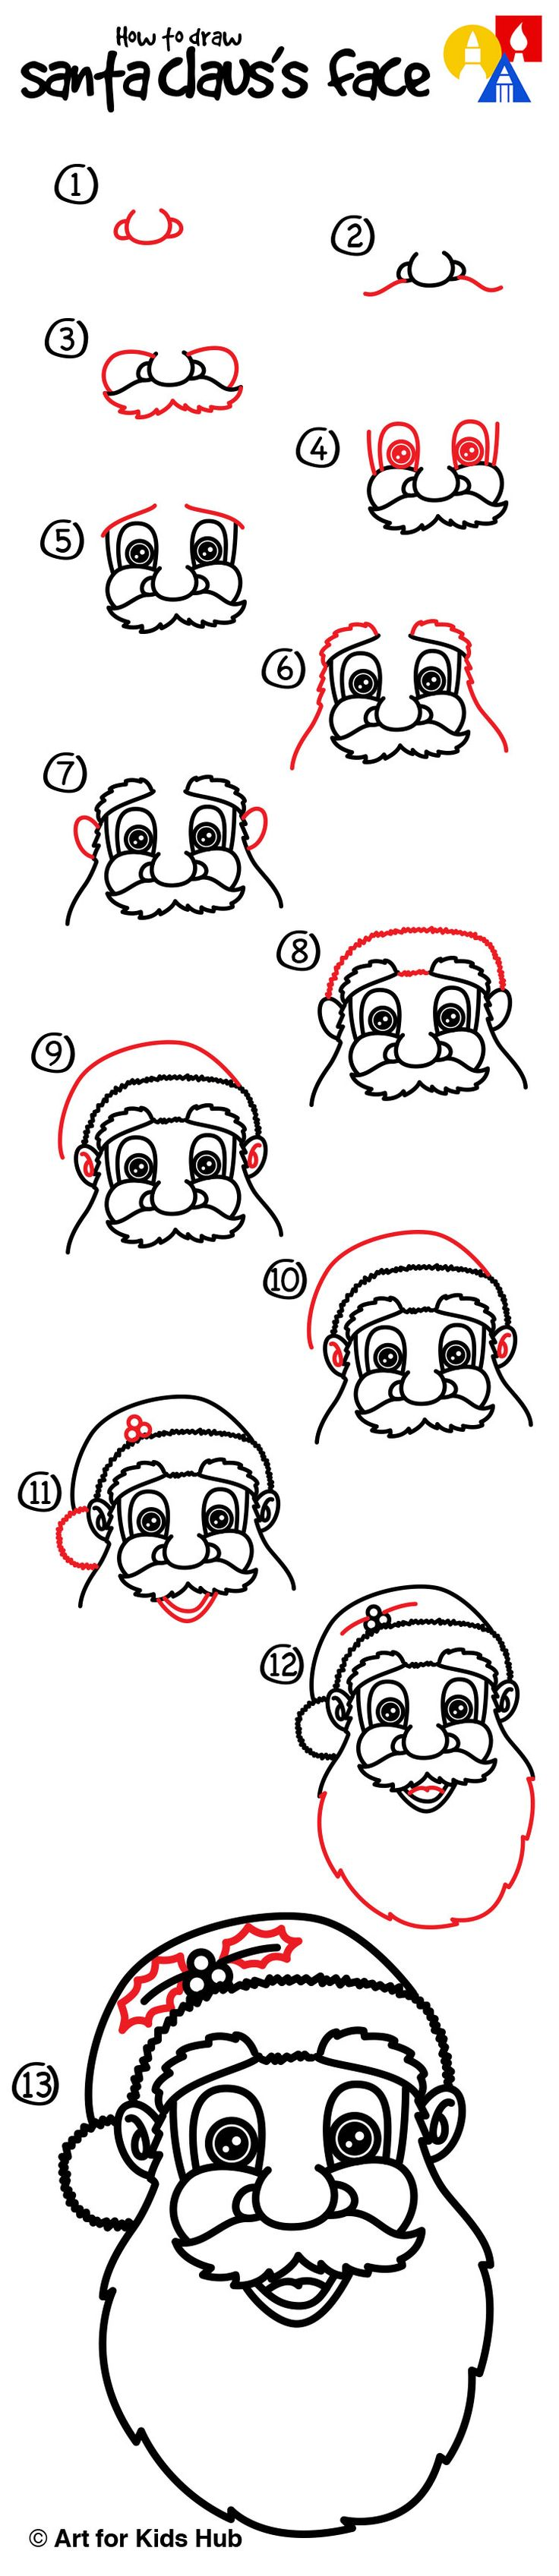 How to draw Santa Claus's face!